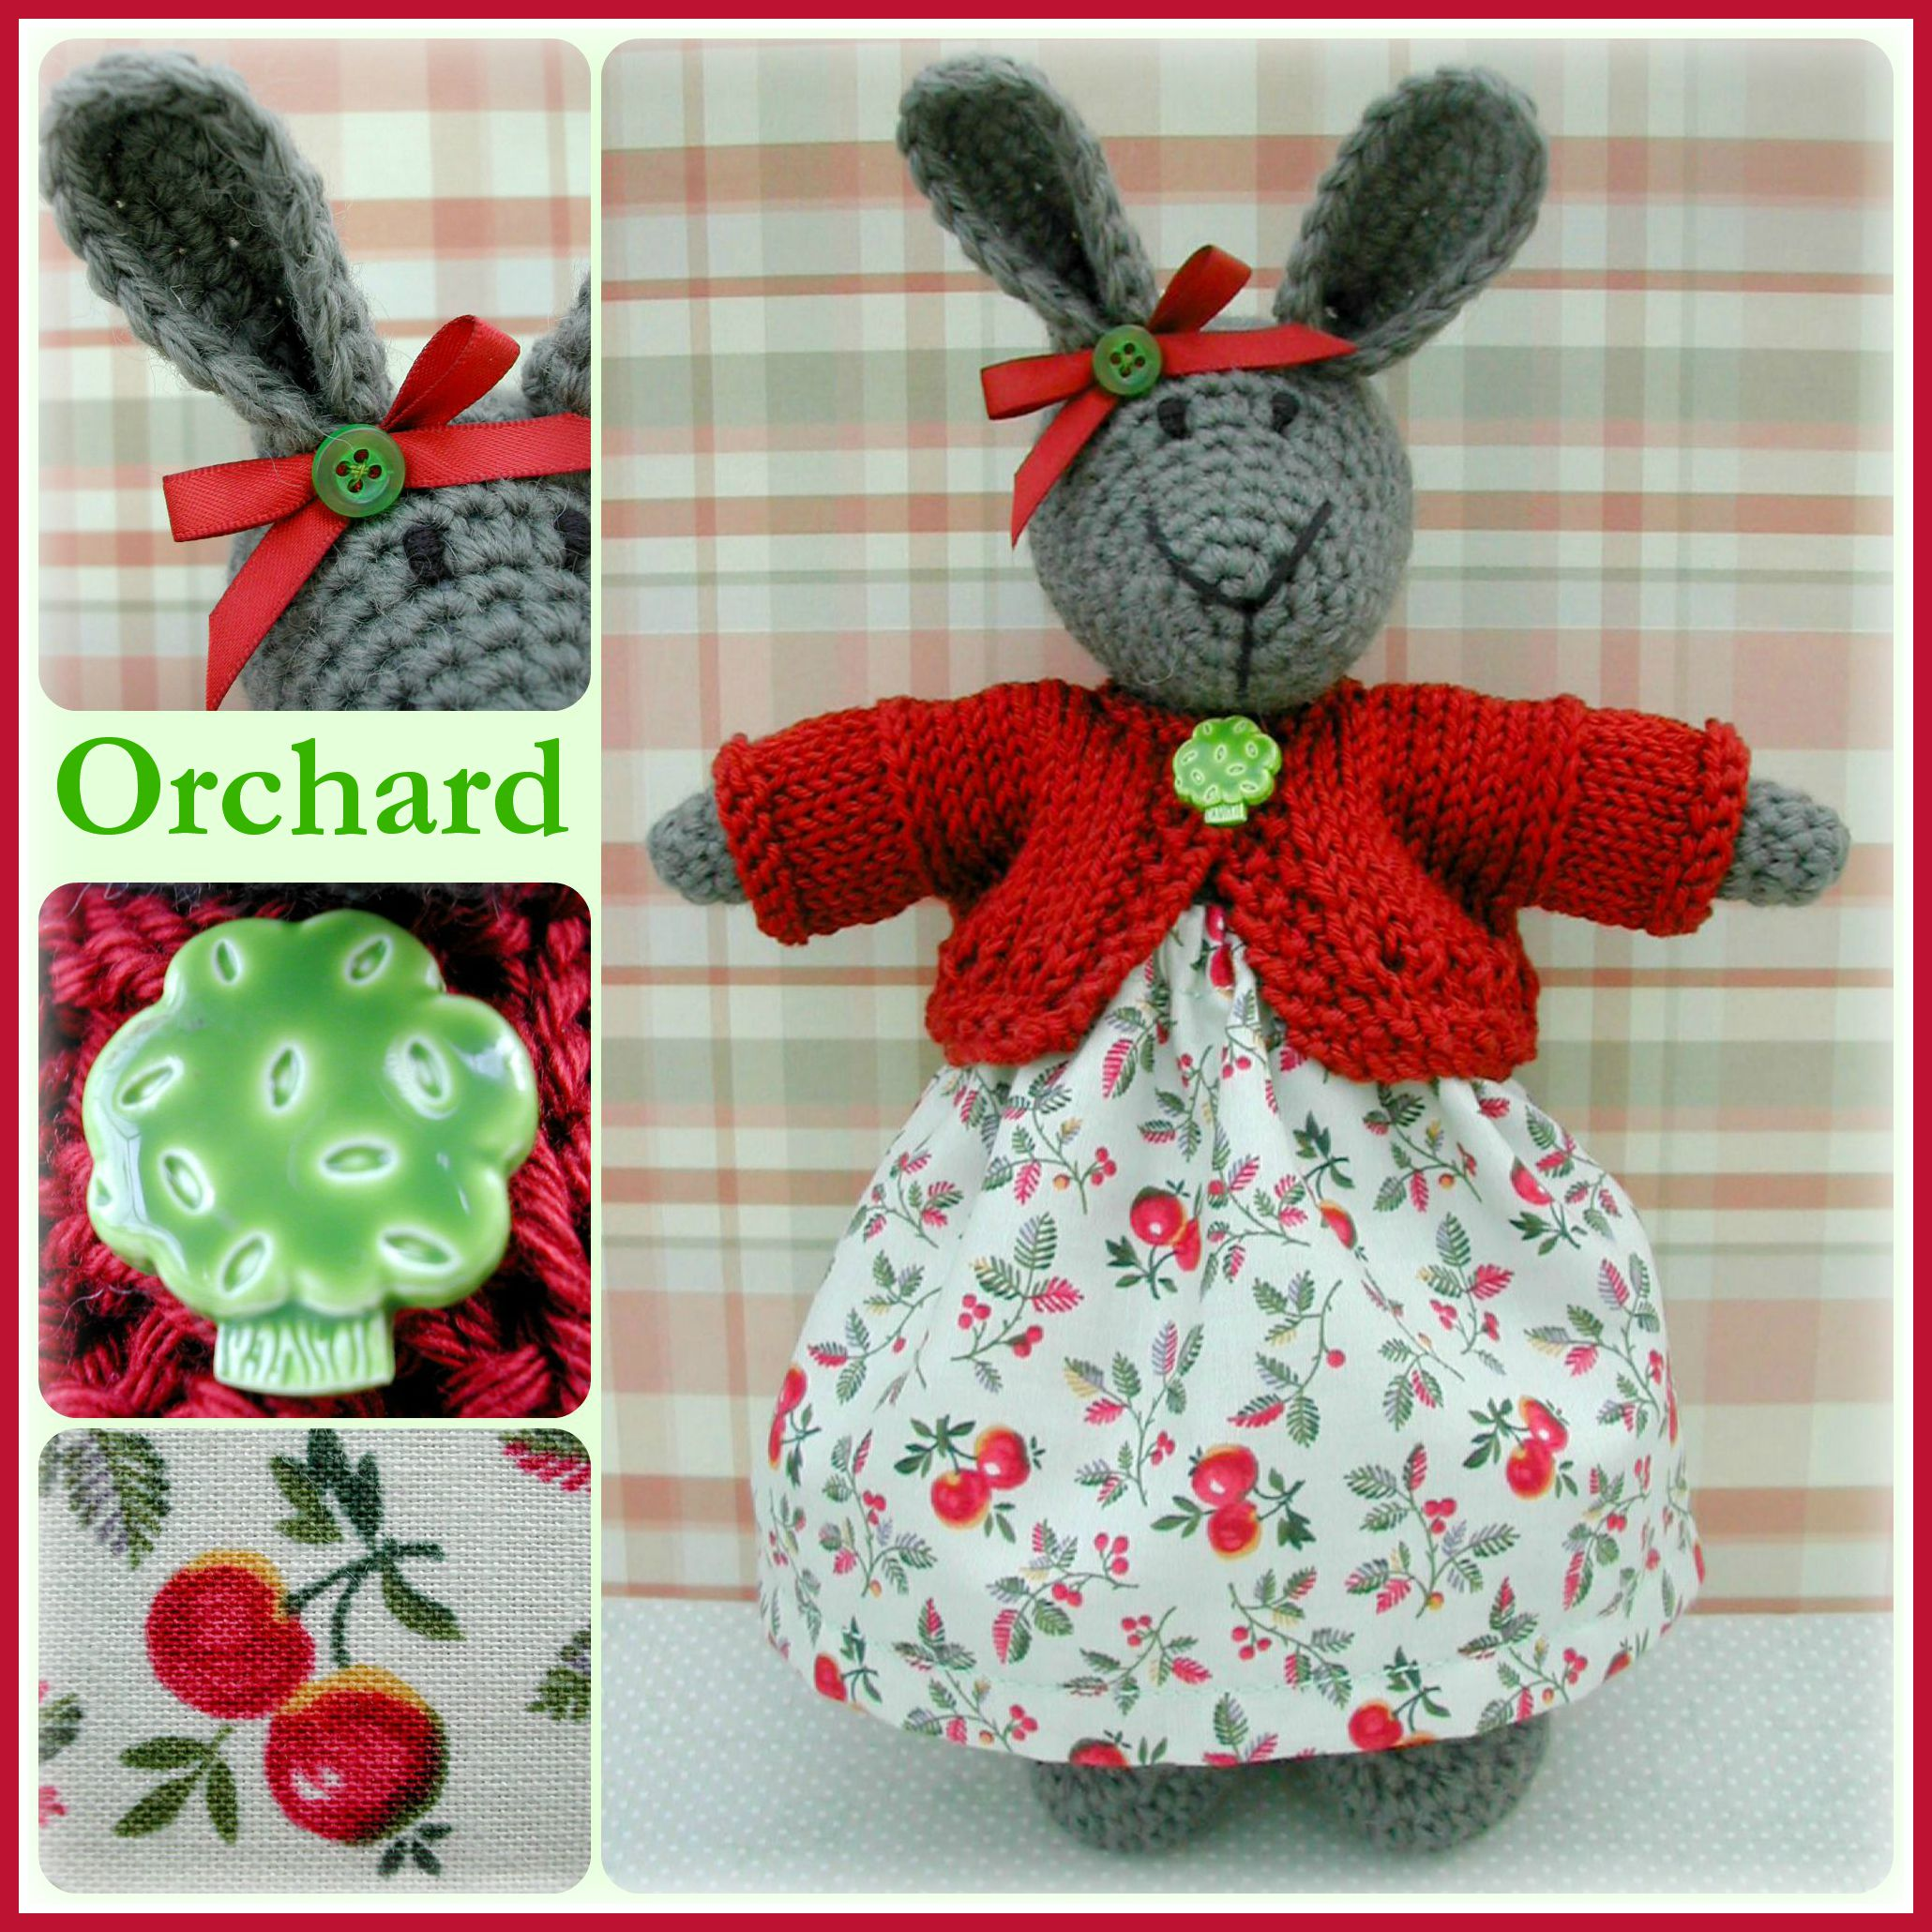 Orchard Collage